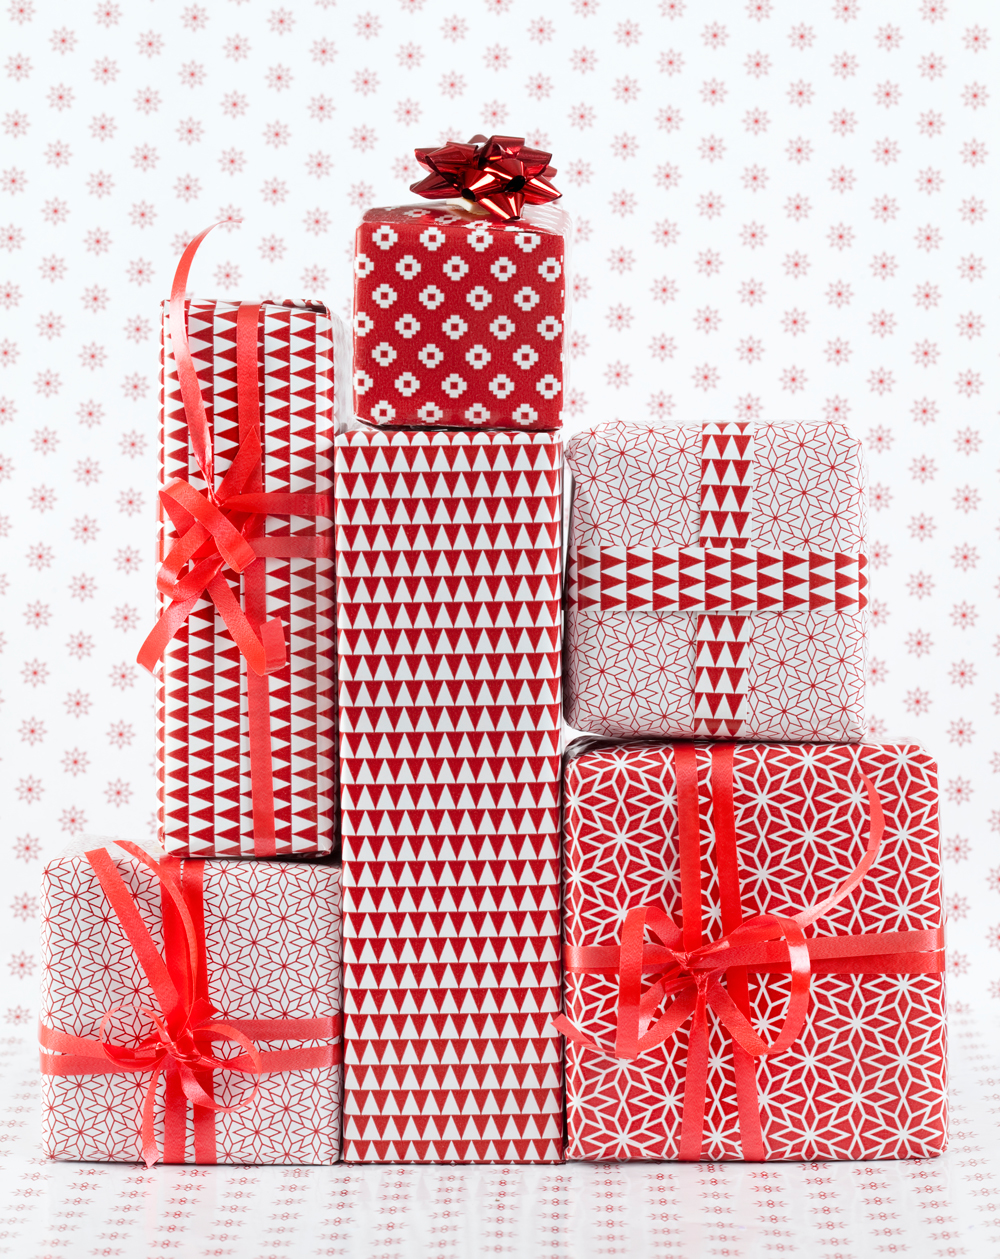 Red and White Presents